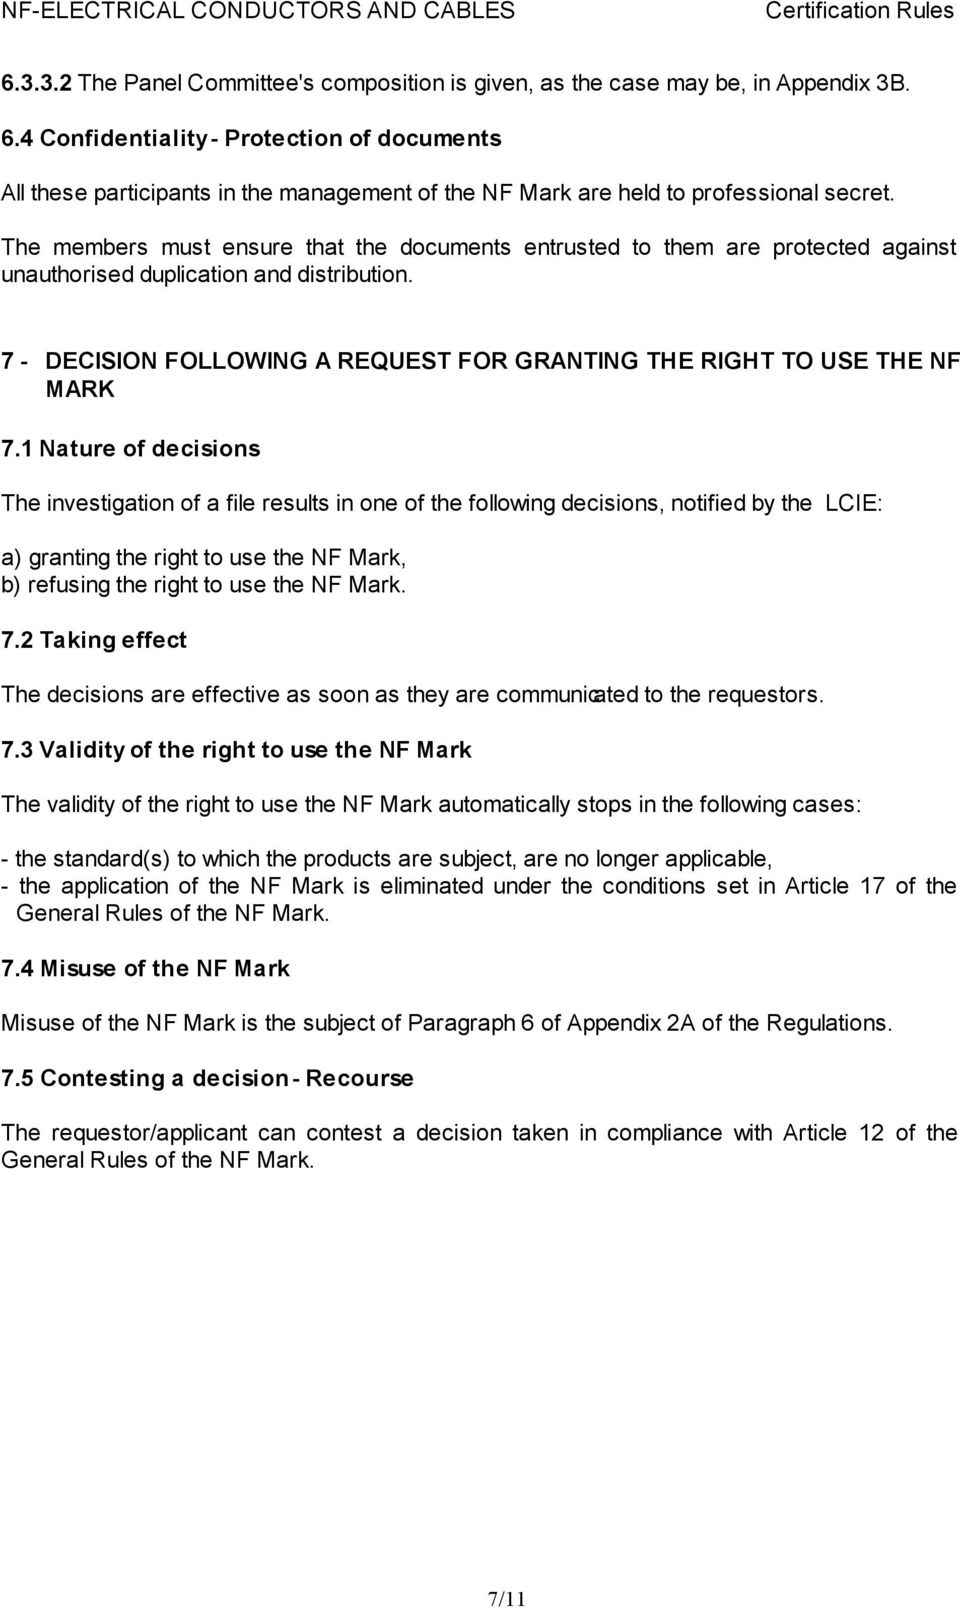 7 - DECISION FOLLOWING A REQUEST FOR GRANTING THE RIGHT TO USE THE NF MARK 7.